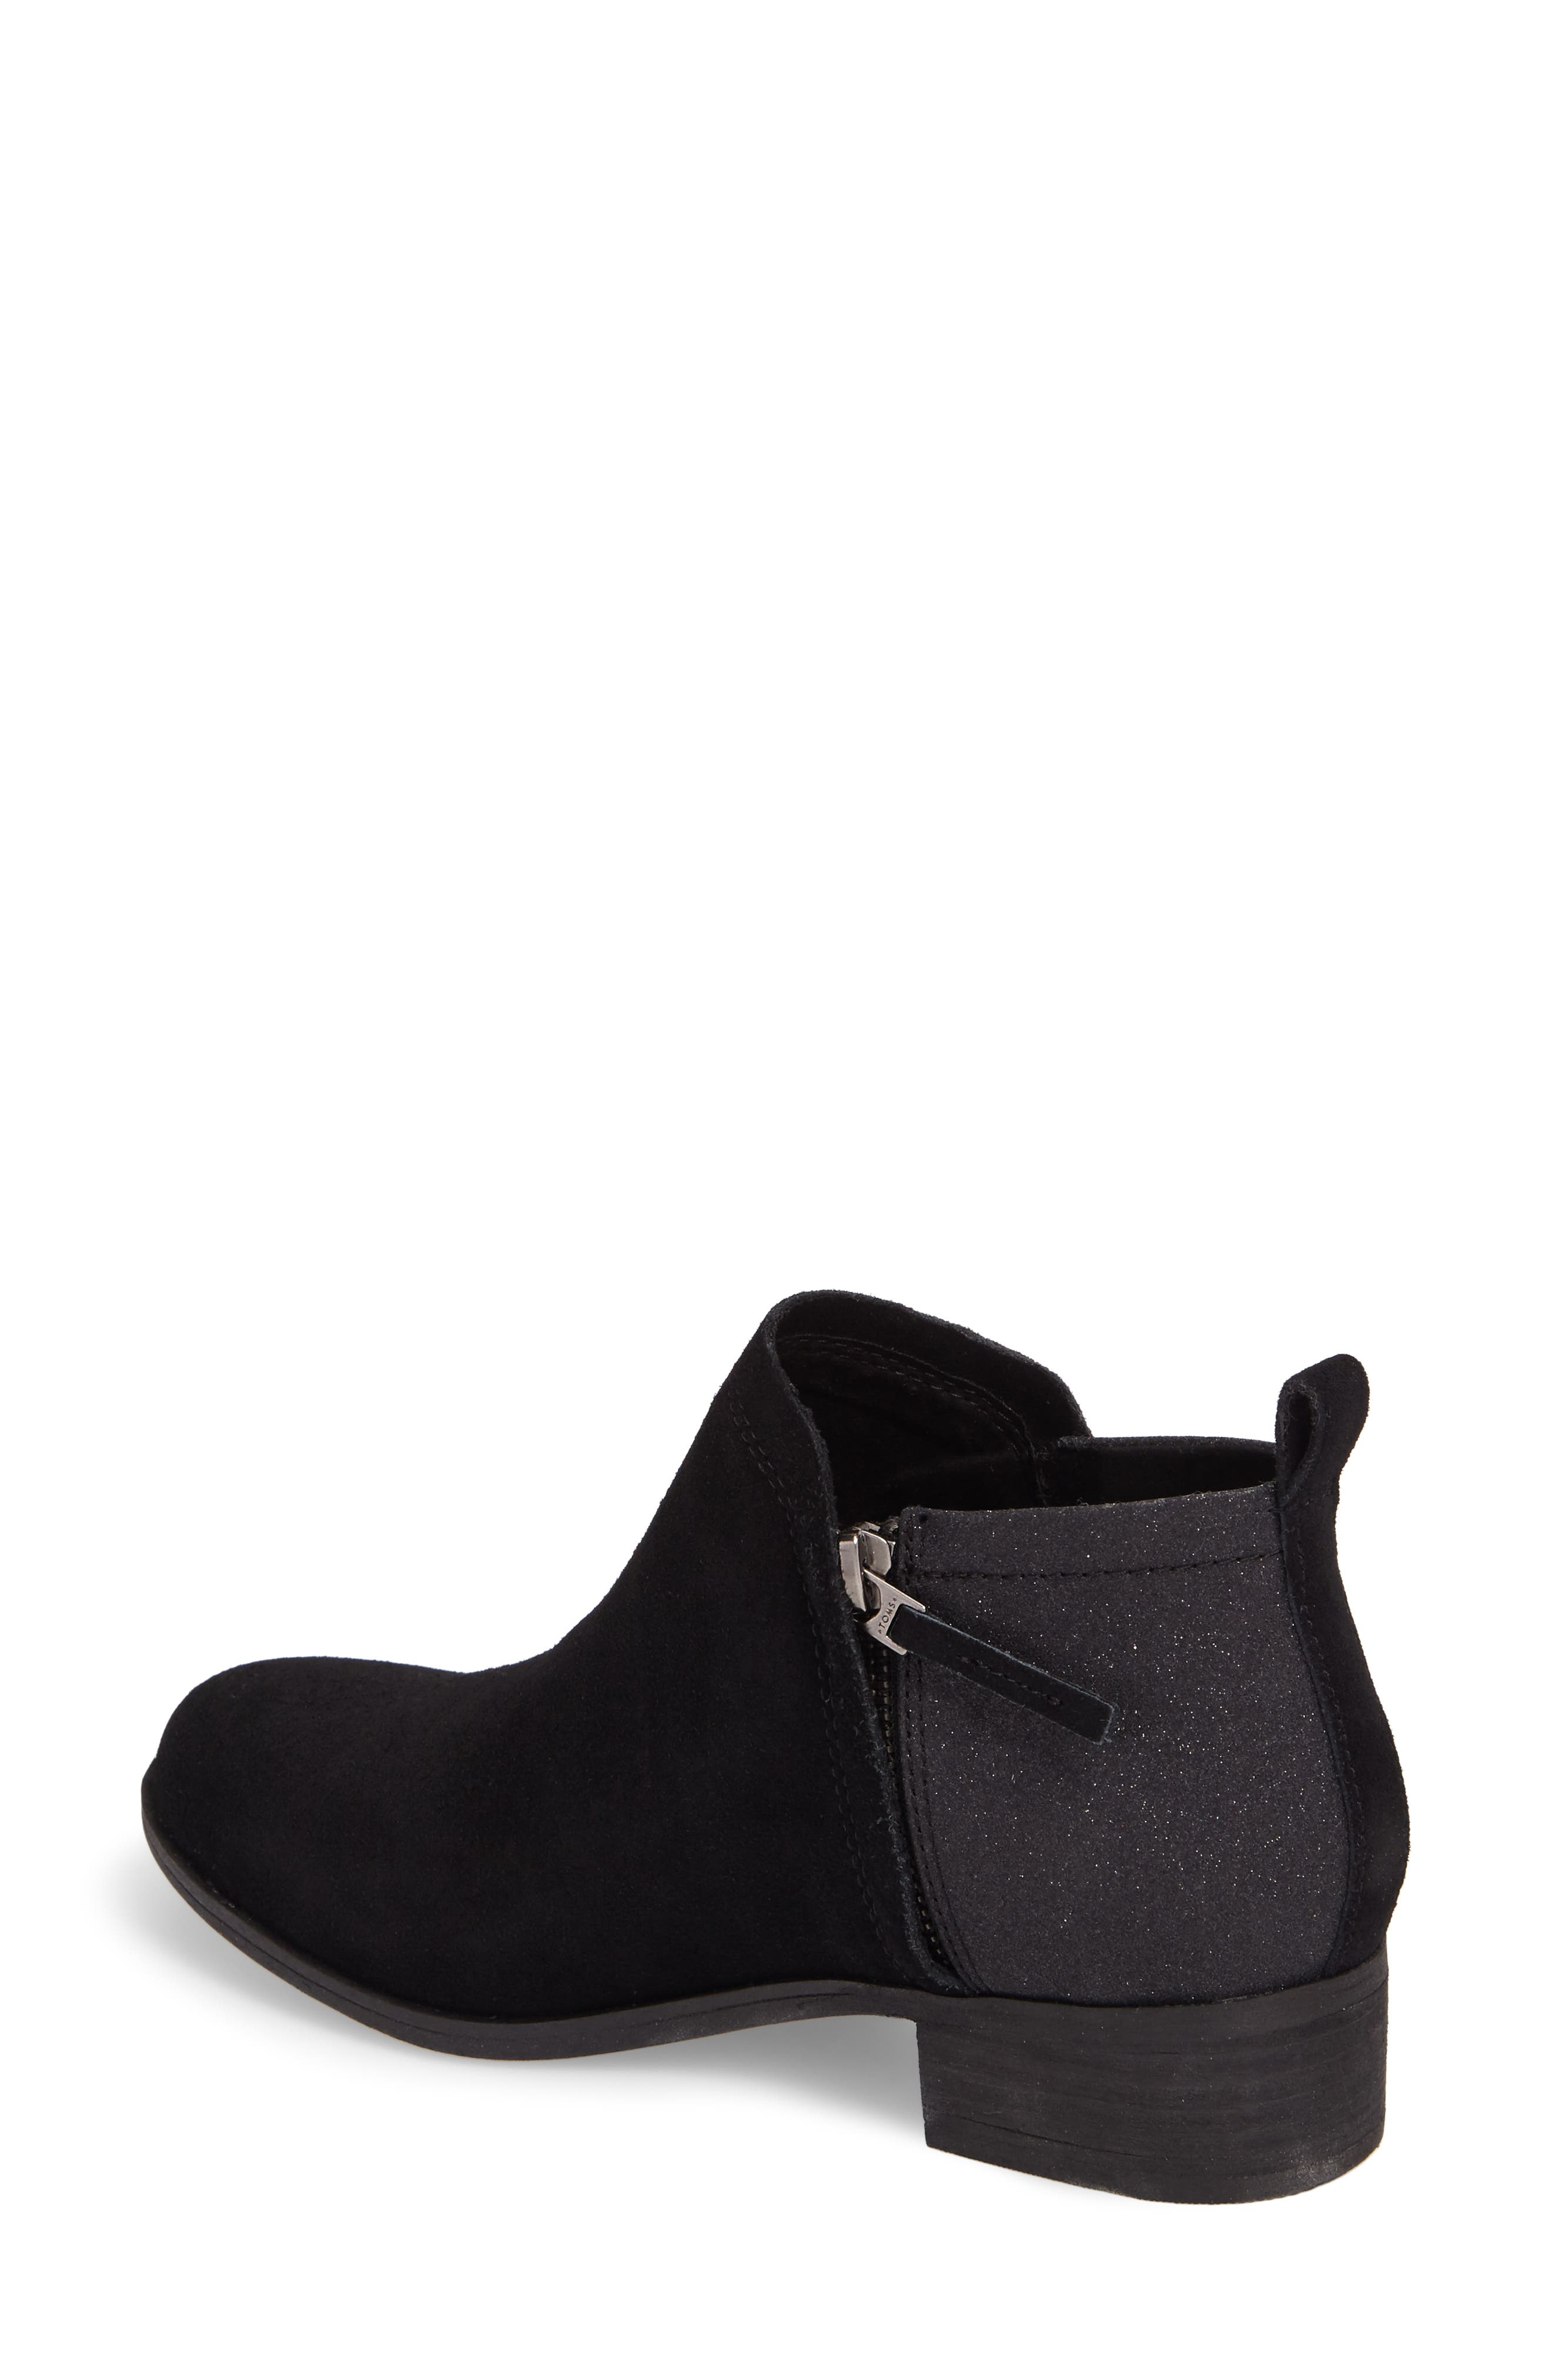 Deia Zip Bootie,                             Alternate thumbnail 14, color,